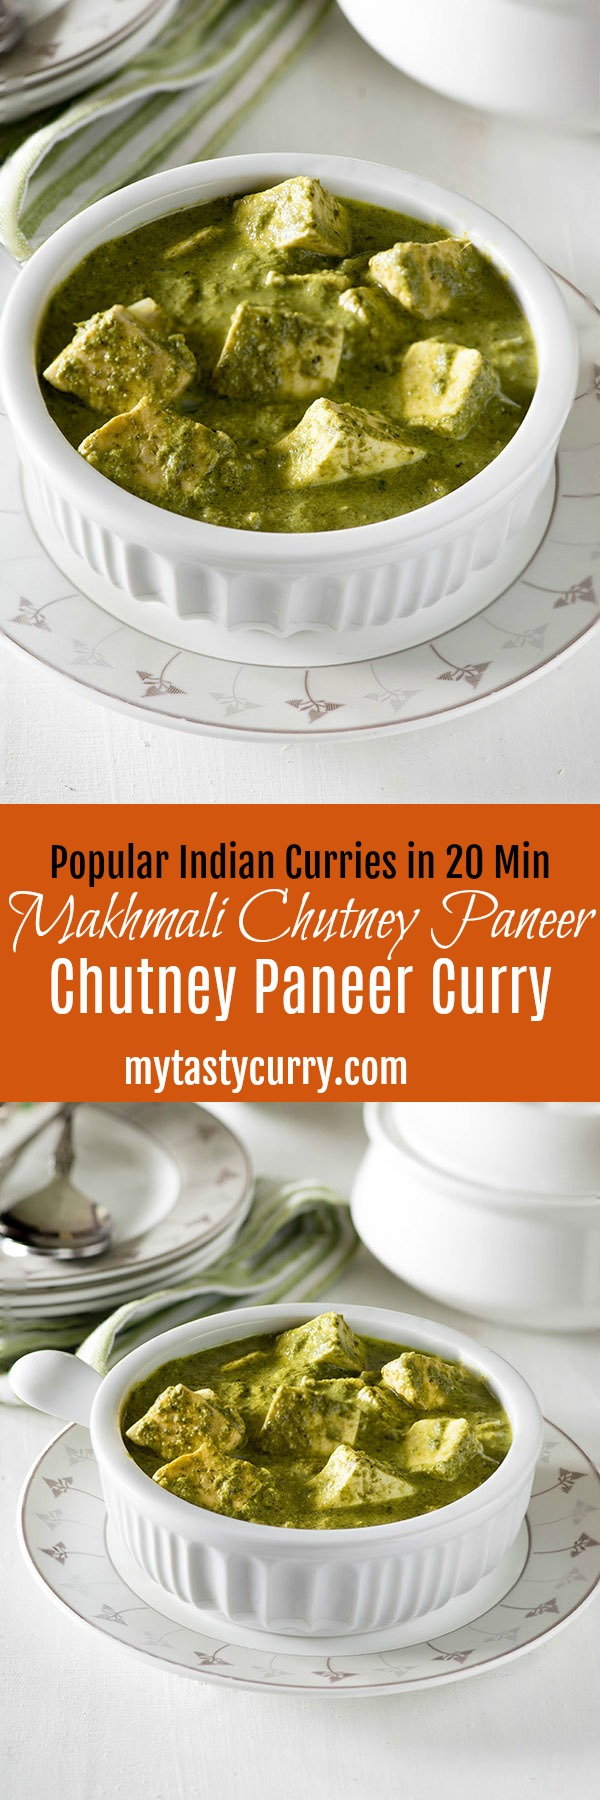 Makhmali Paneer curry is a spicy and aromatic quick paneer dish with a vibrant color and bold flavors. This popular Indian curry takes only 20 minutes to cook and is high on flavor.One of the quickest Paneer curry to serve with Paratha and Naan